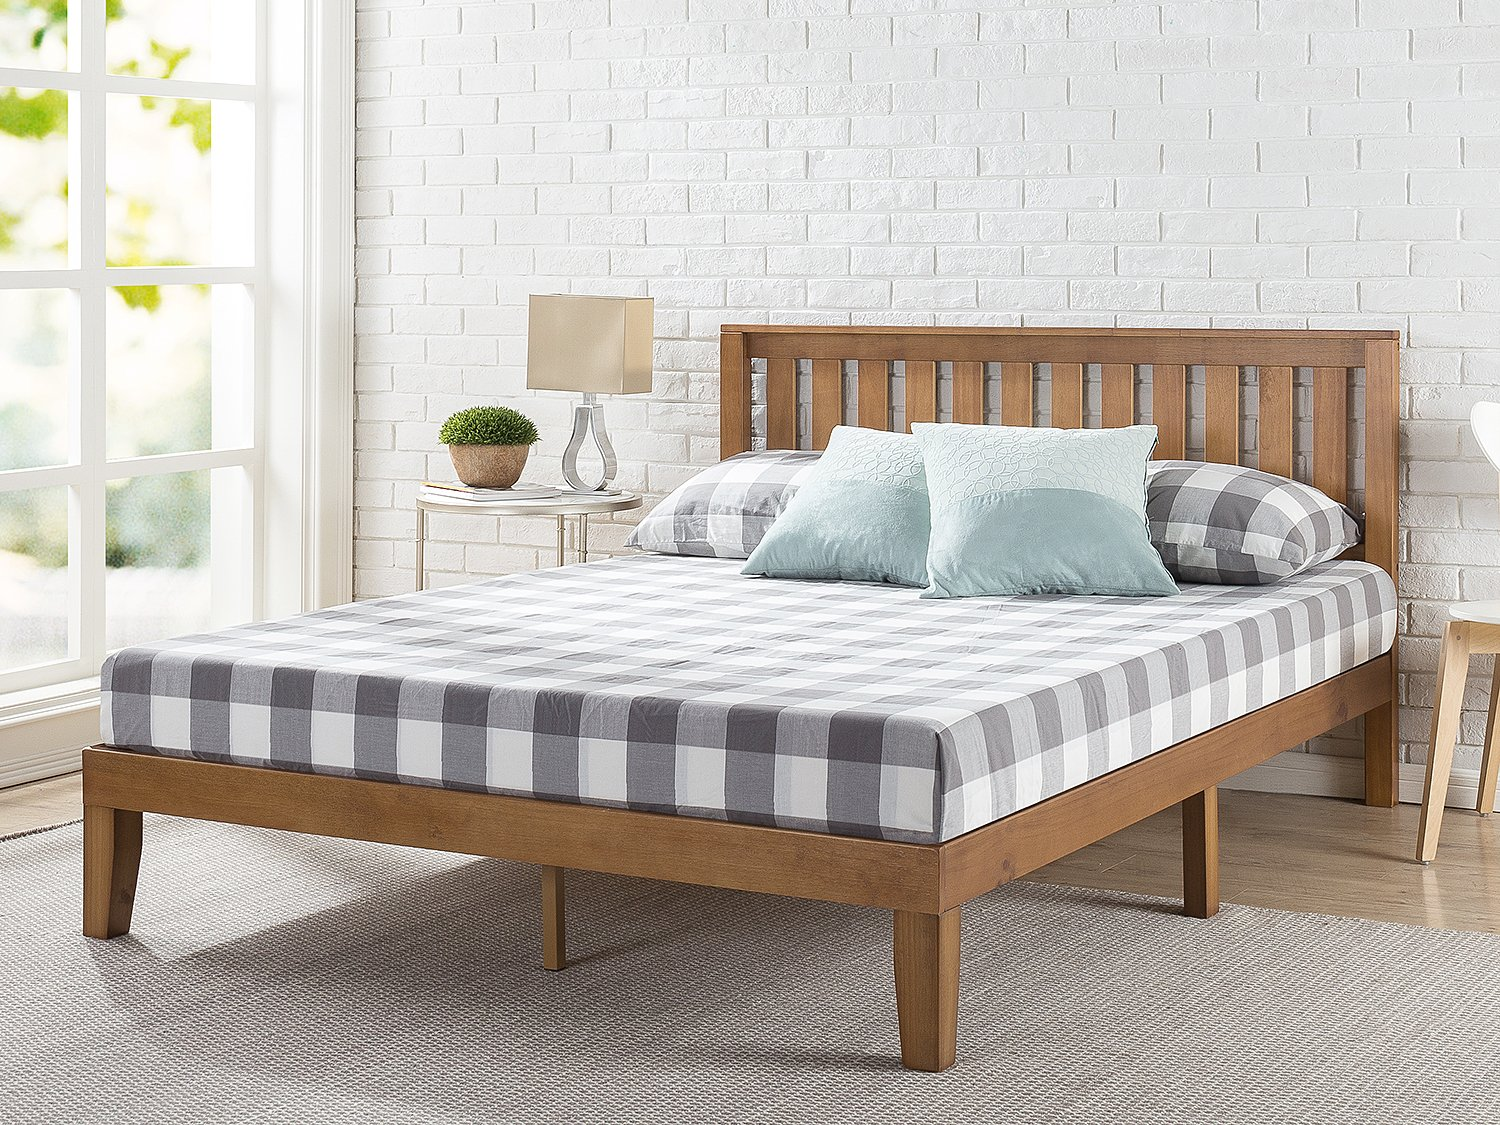 Zinus 12 Inch Wood Platform Bed with Headboard / No Box Spring Needed / Wood Slat Support / Rustic Pine Finish, Twin